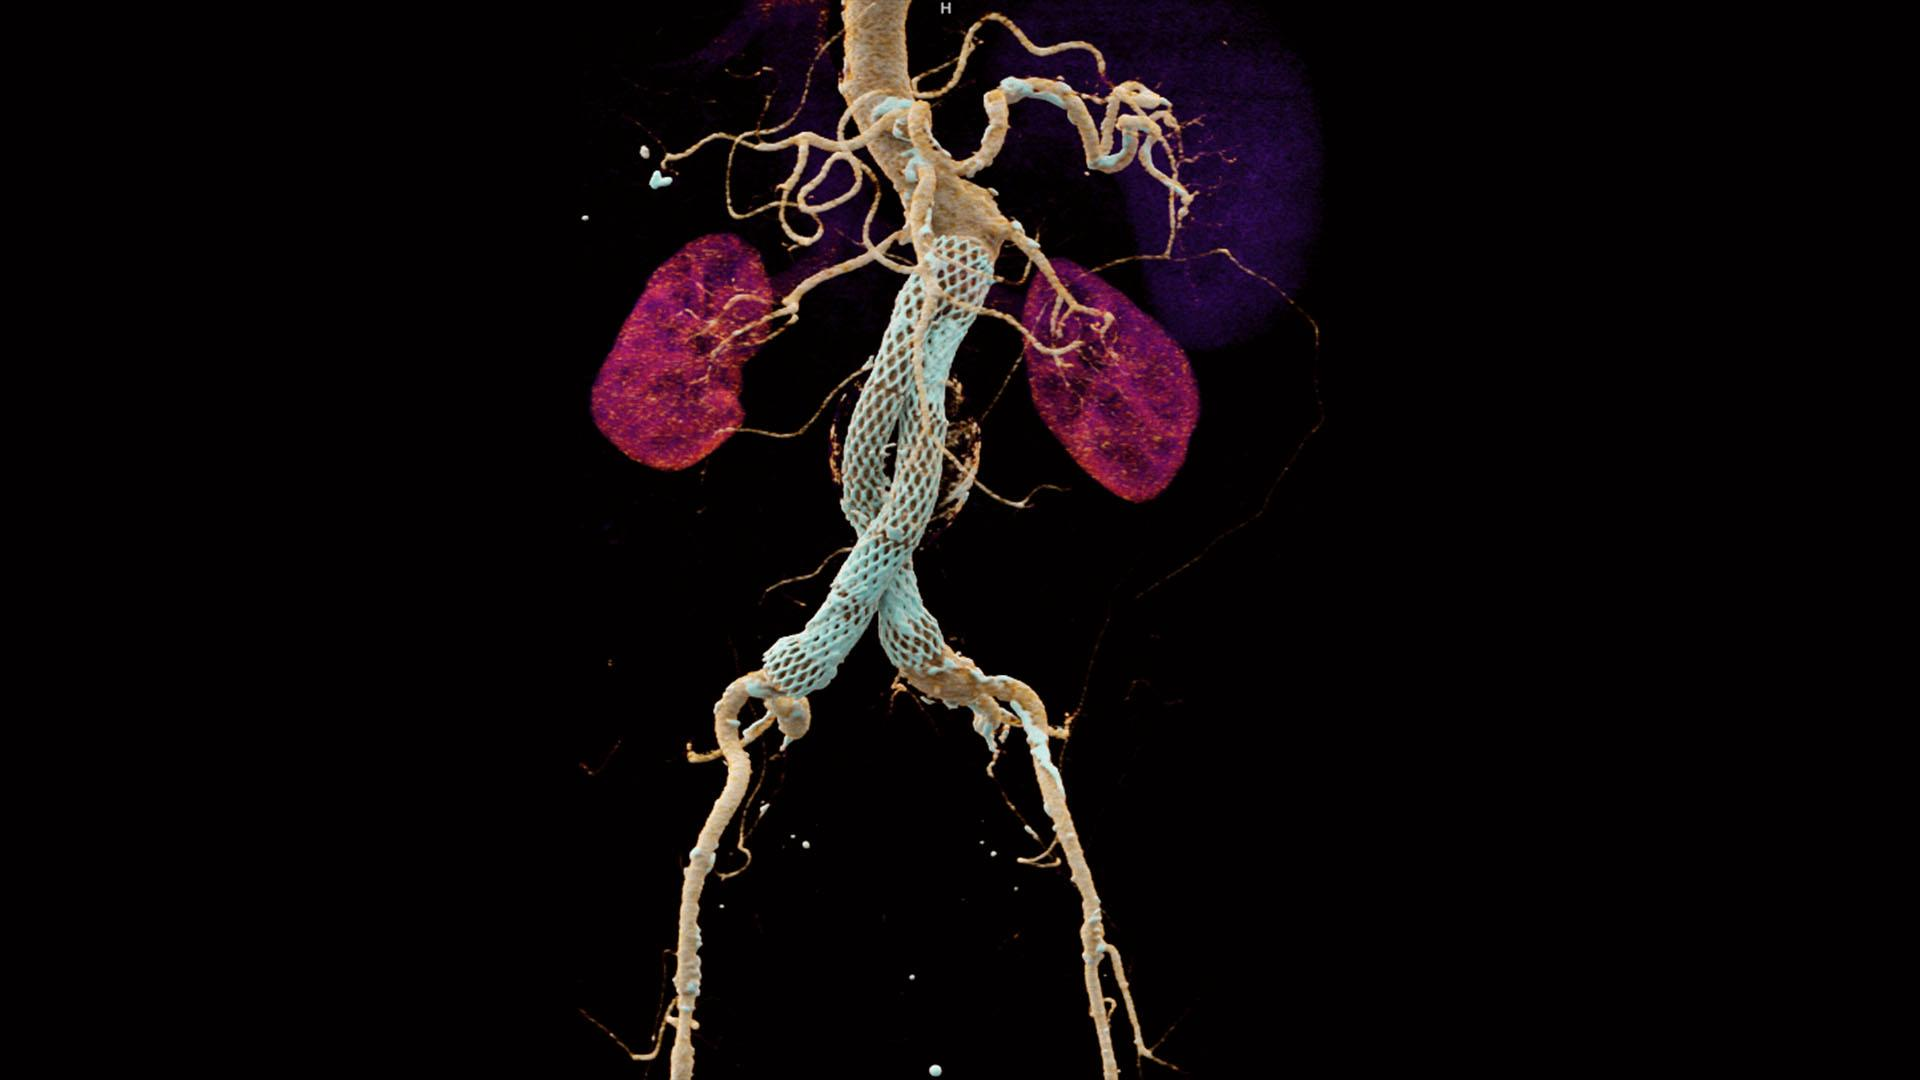 A CT angiography (CTA) was performed for follow-up evaluation on a 70-year-old male patient after stent grafts placement and a known history of peripheral vascular disease.